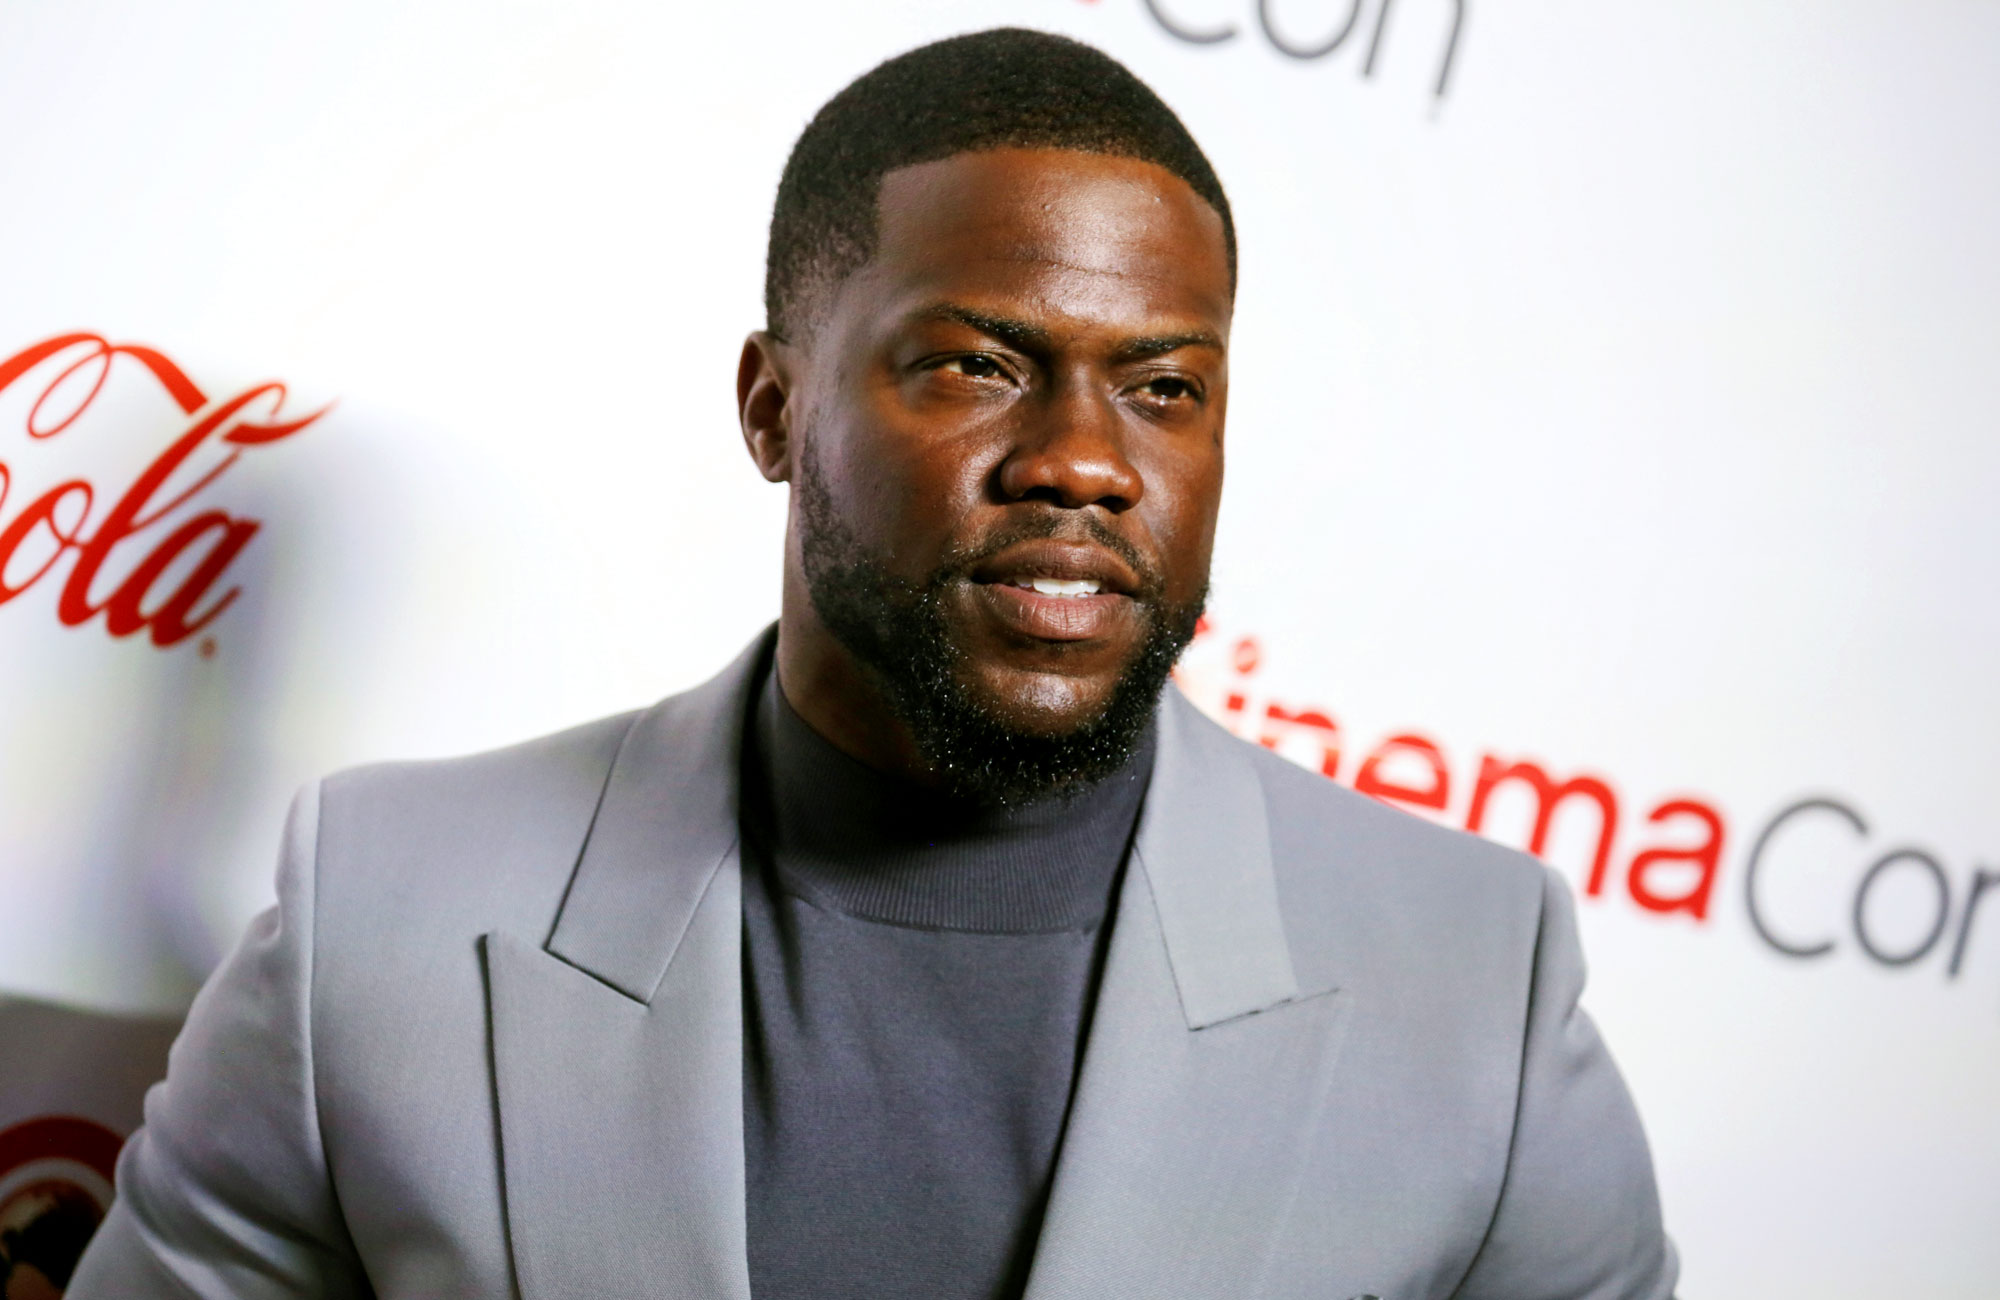 Kevin Hart Breaks His Silence on Car Crash in Emotional Video